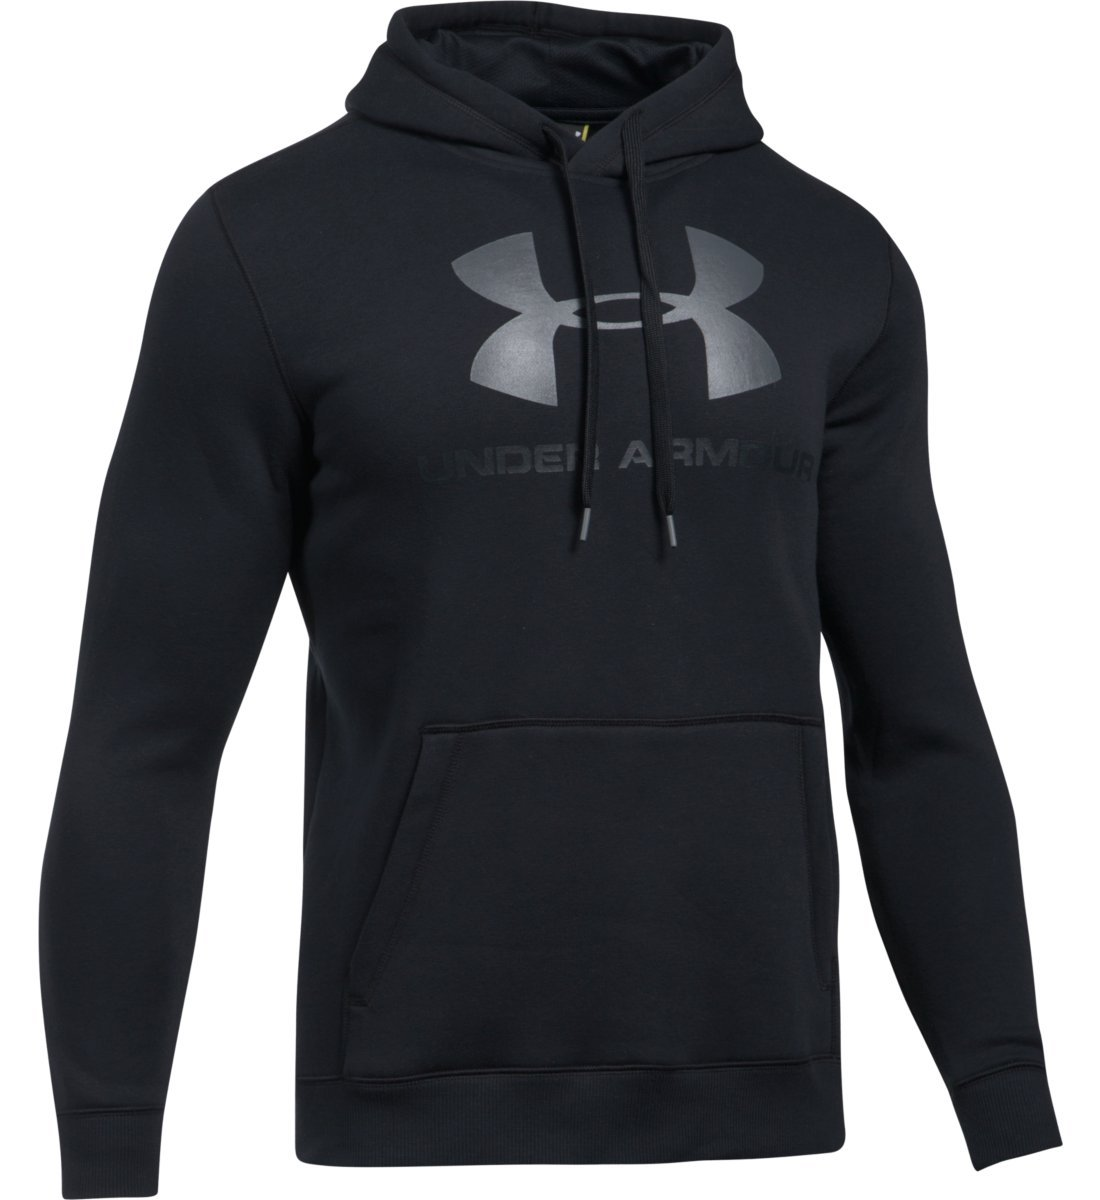 Under Armour Men's UA Rival Fitted Graphic Hoodie, Black/Stealth GrayGraphite, XLarge